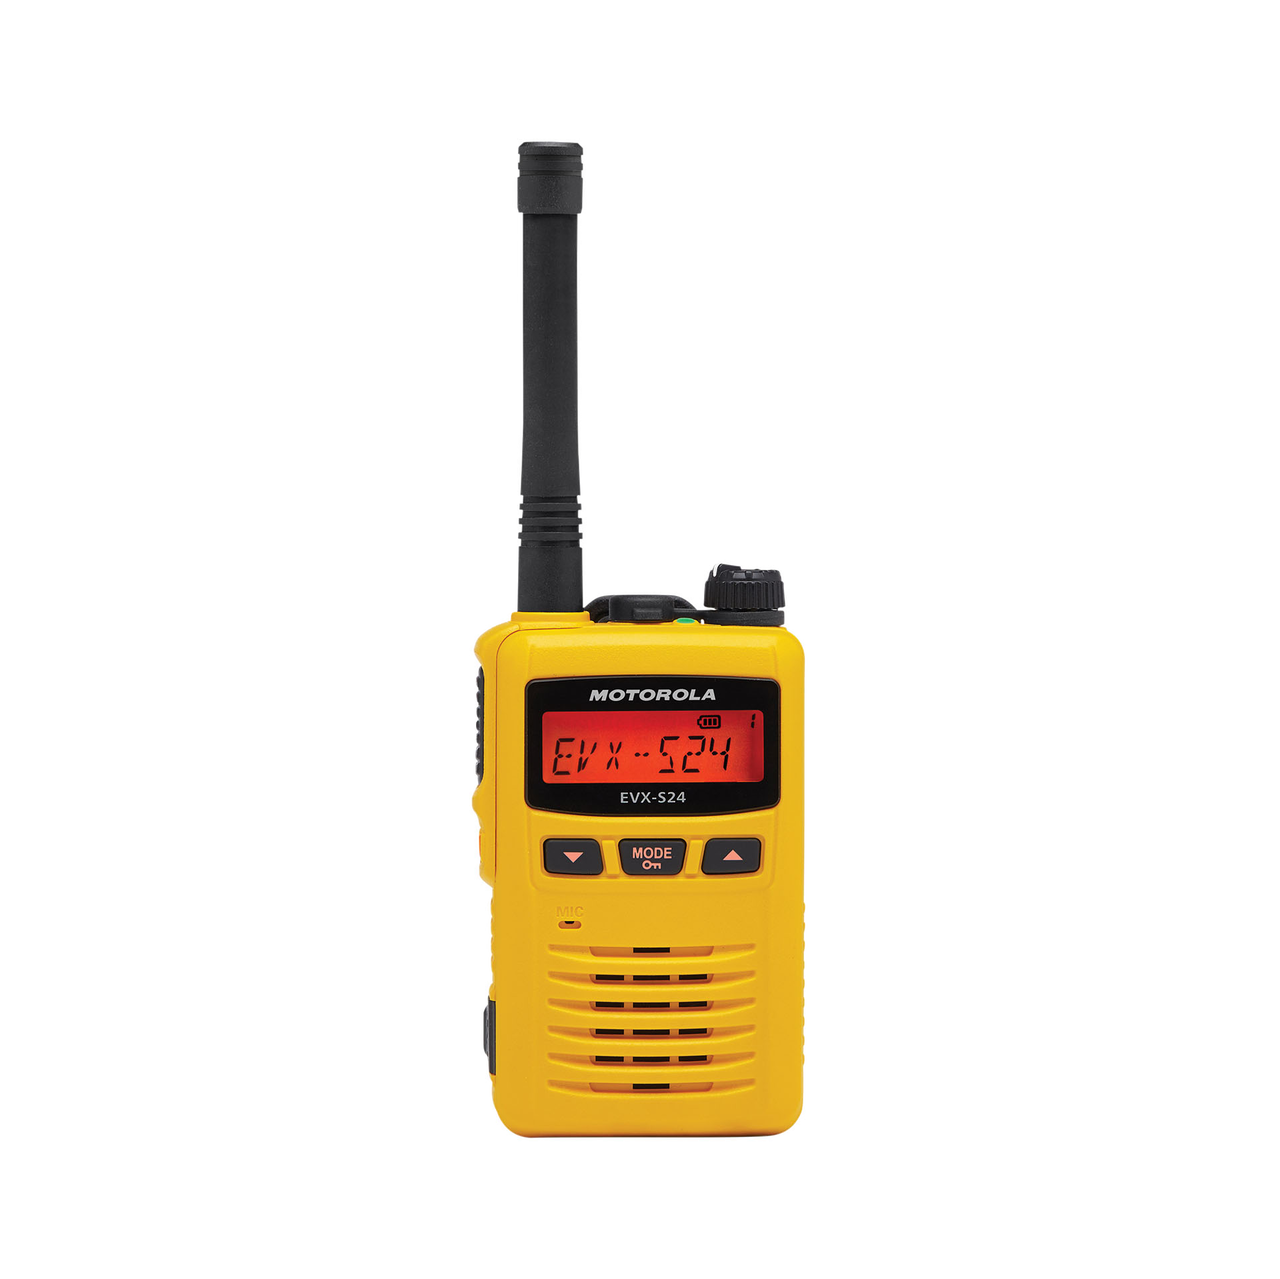 EVX-S24 Digital Two-Way Radio